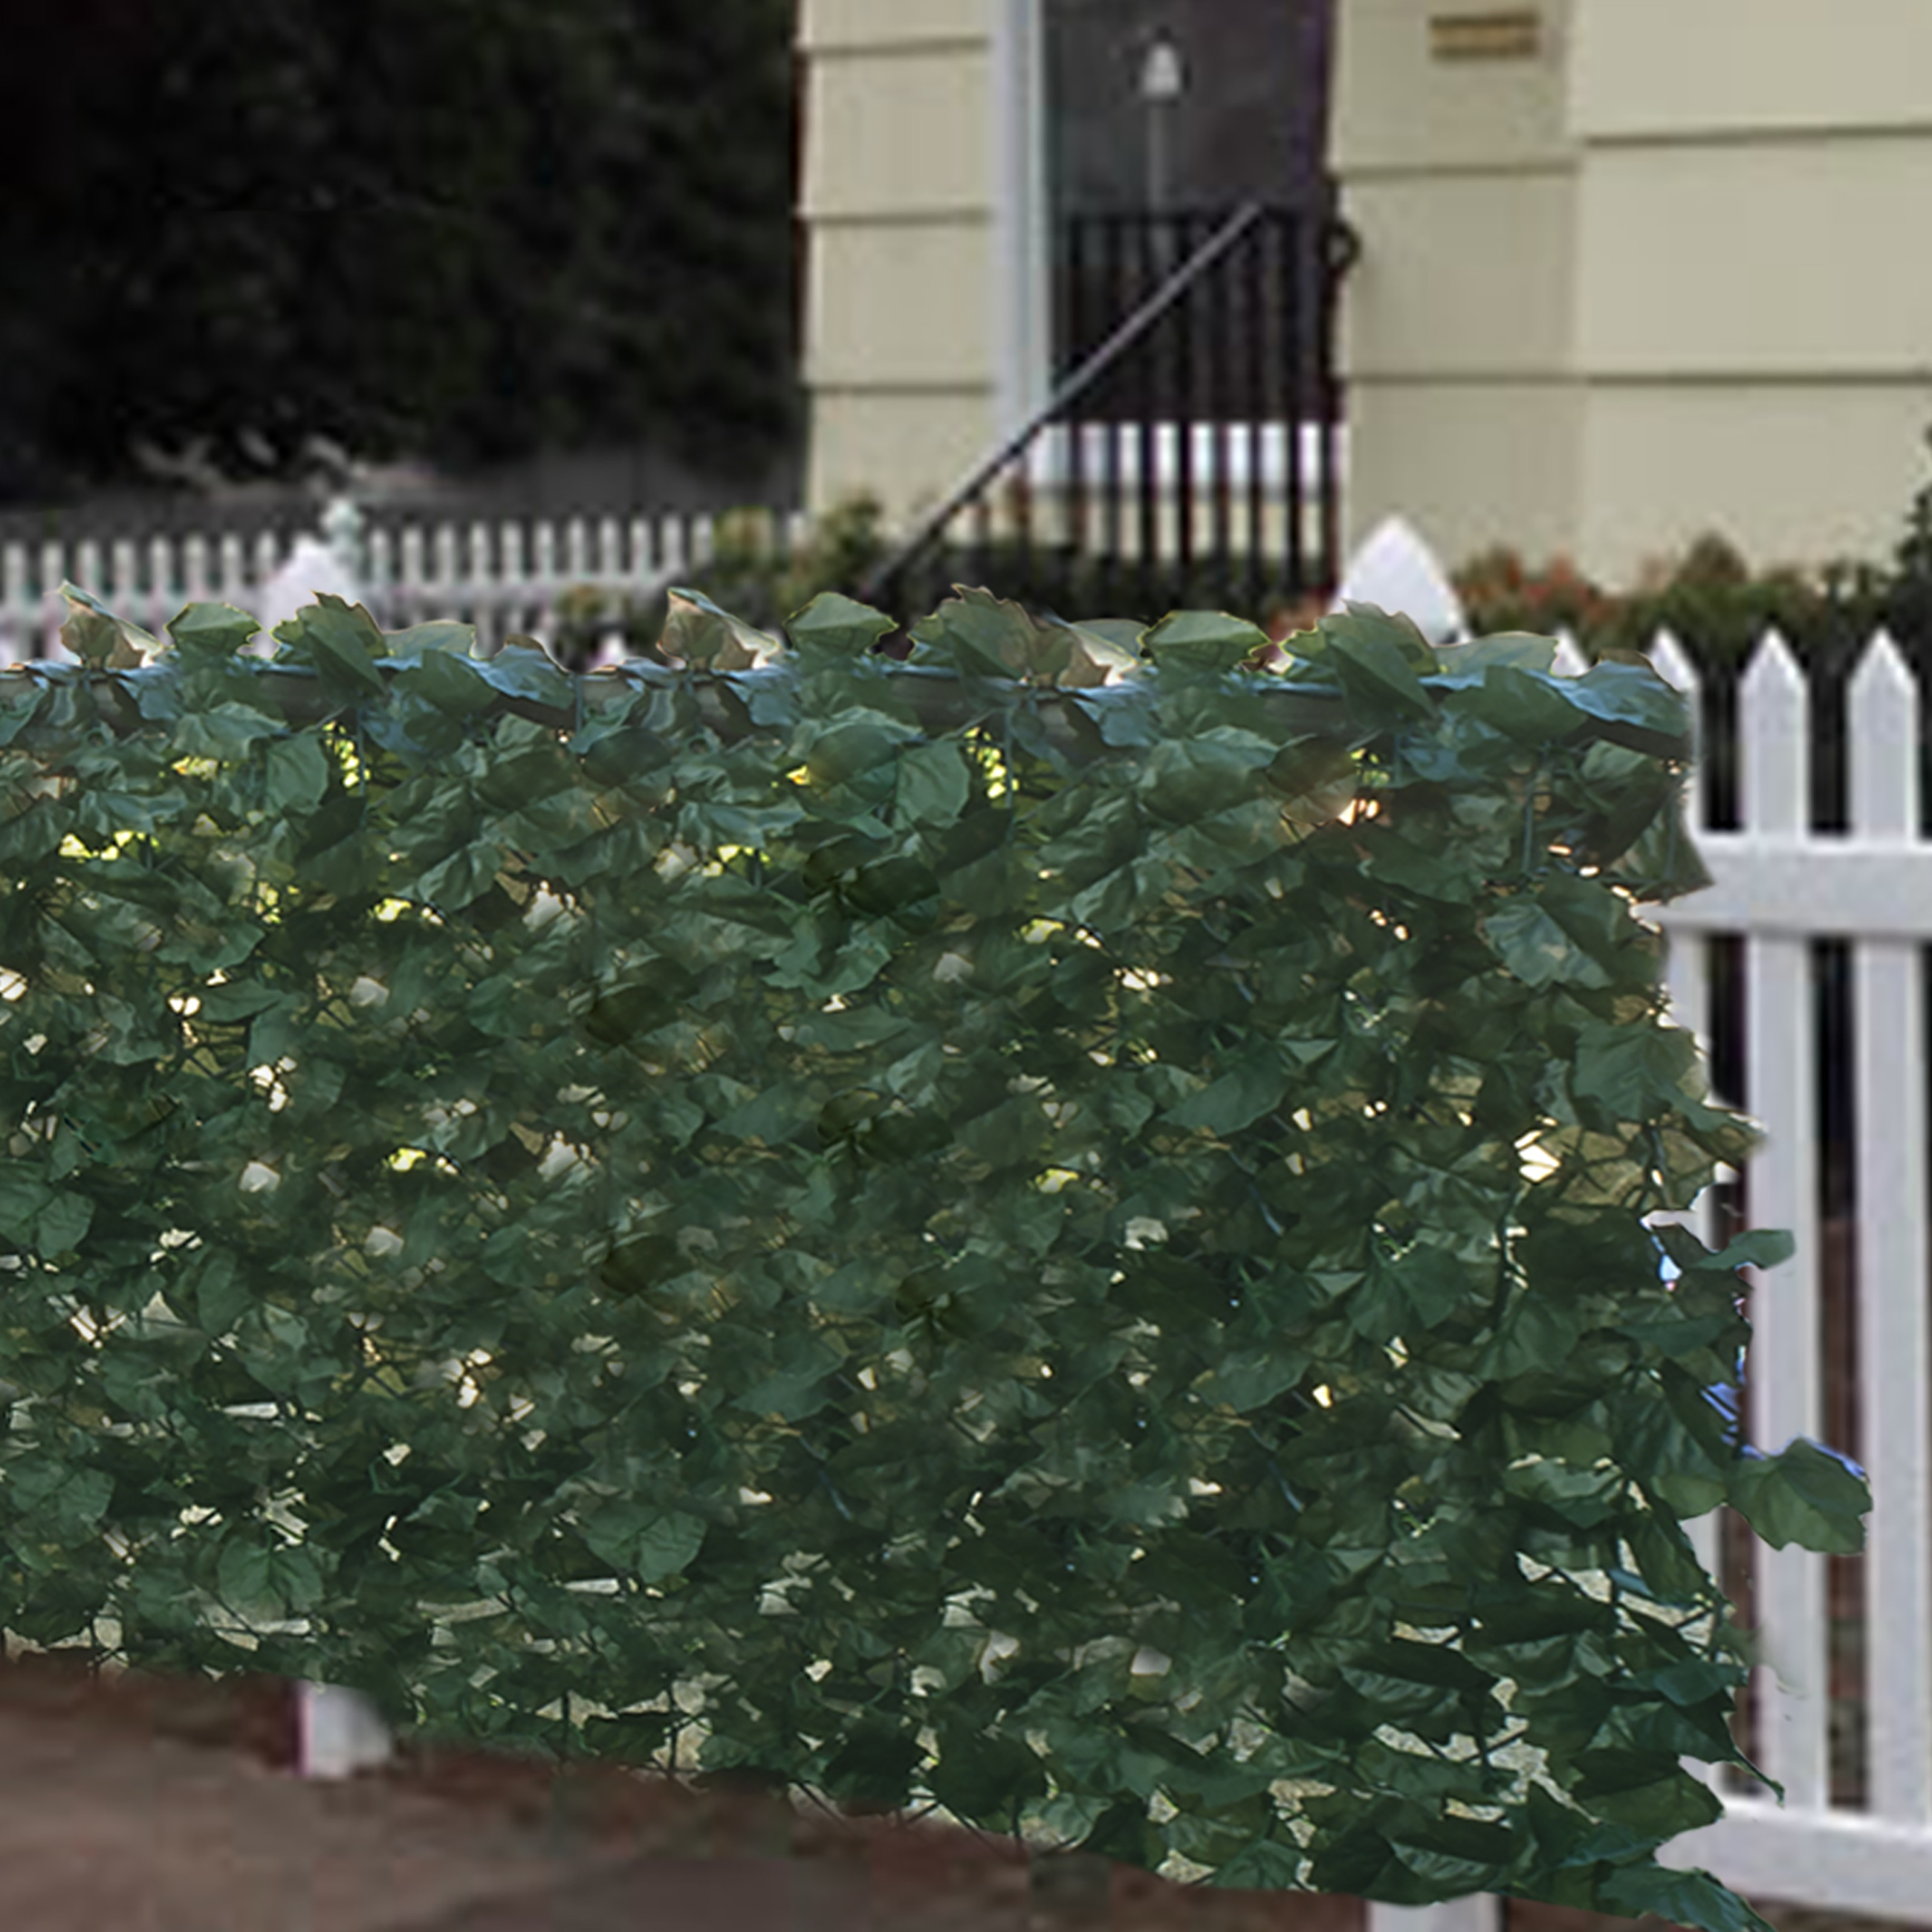 Best Choice Products 94x59in Artificial Faux Ivy Hedge Privacy Fence